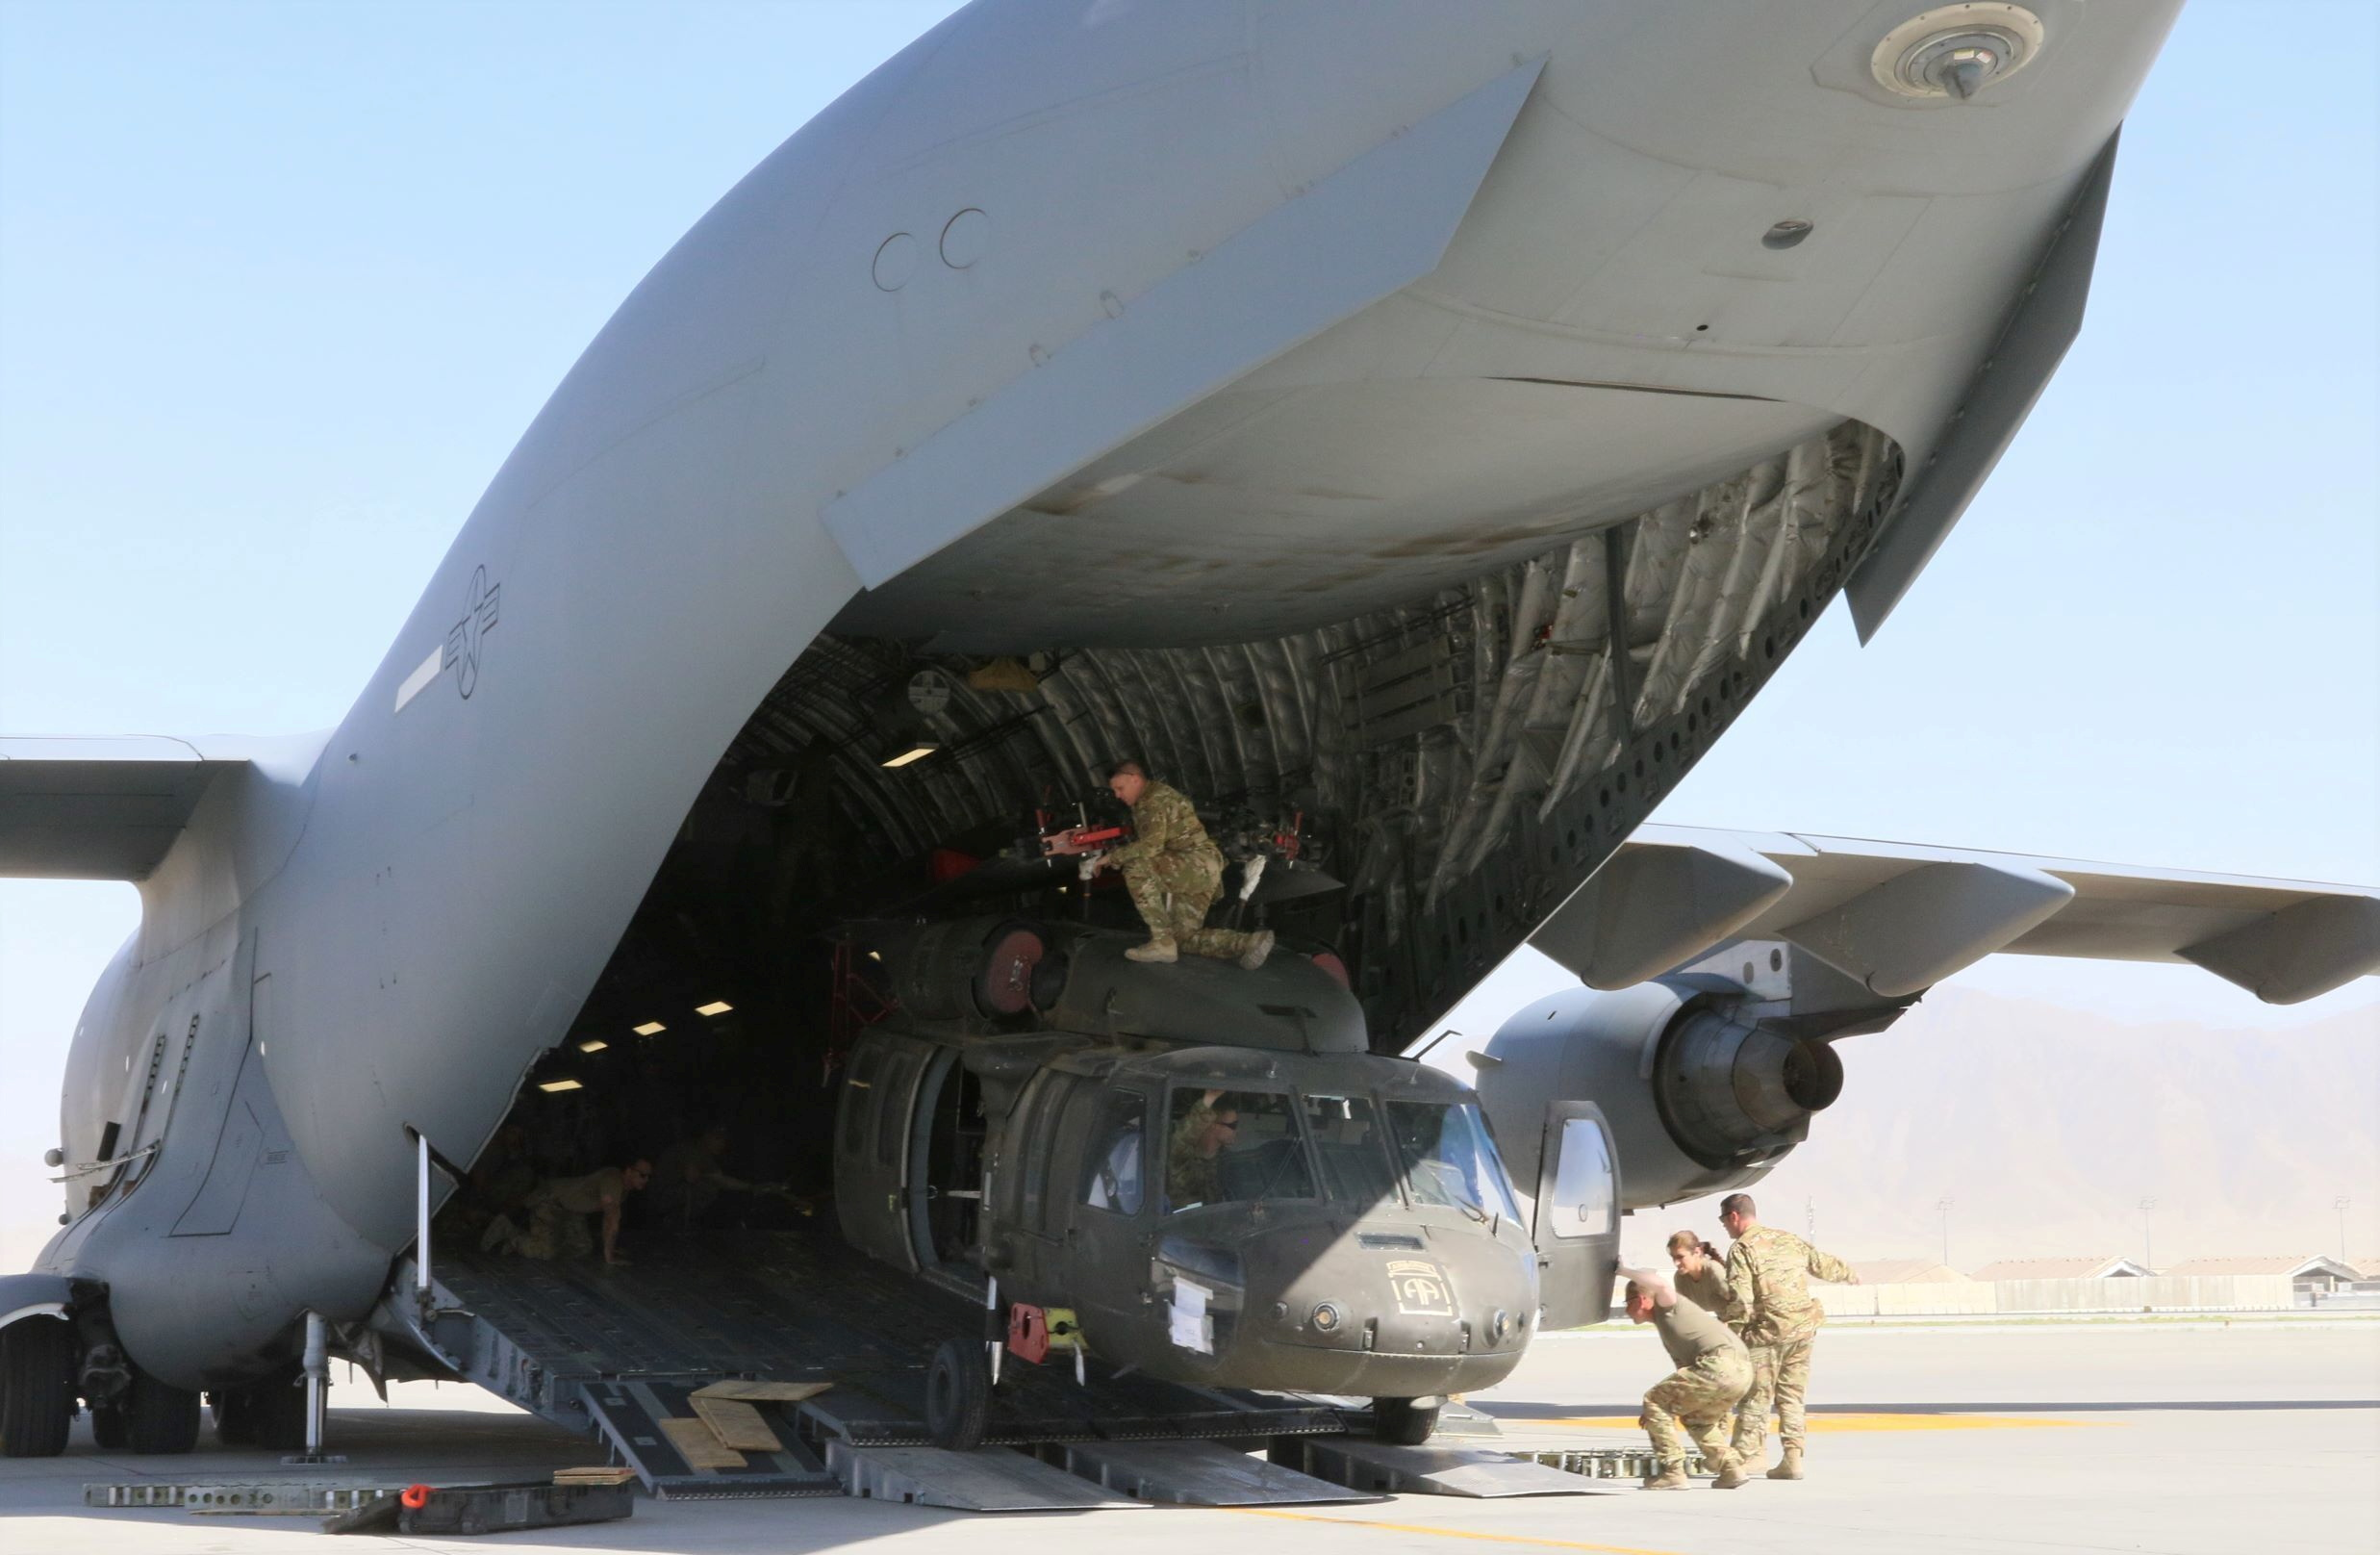 Aerial porters work with maintainers to load a UH-60L Blackhawk helicopter into a U.S. Air Force C-17 Globemaster III during the withdrawl of American forces in Afghanistan, June 16, 2021. Picture taken June 16, 2021. U.S. Army/Sgt. 1st Class Corey Vandiver/Handout via REUTERS